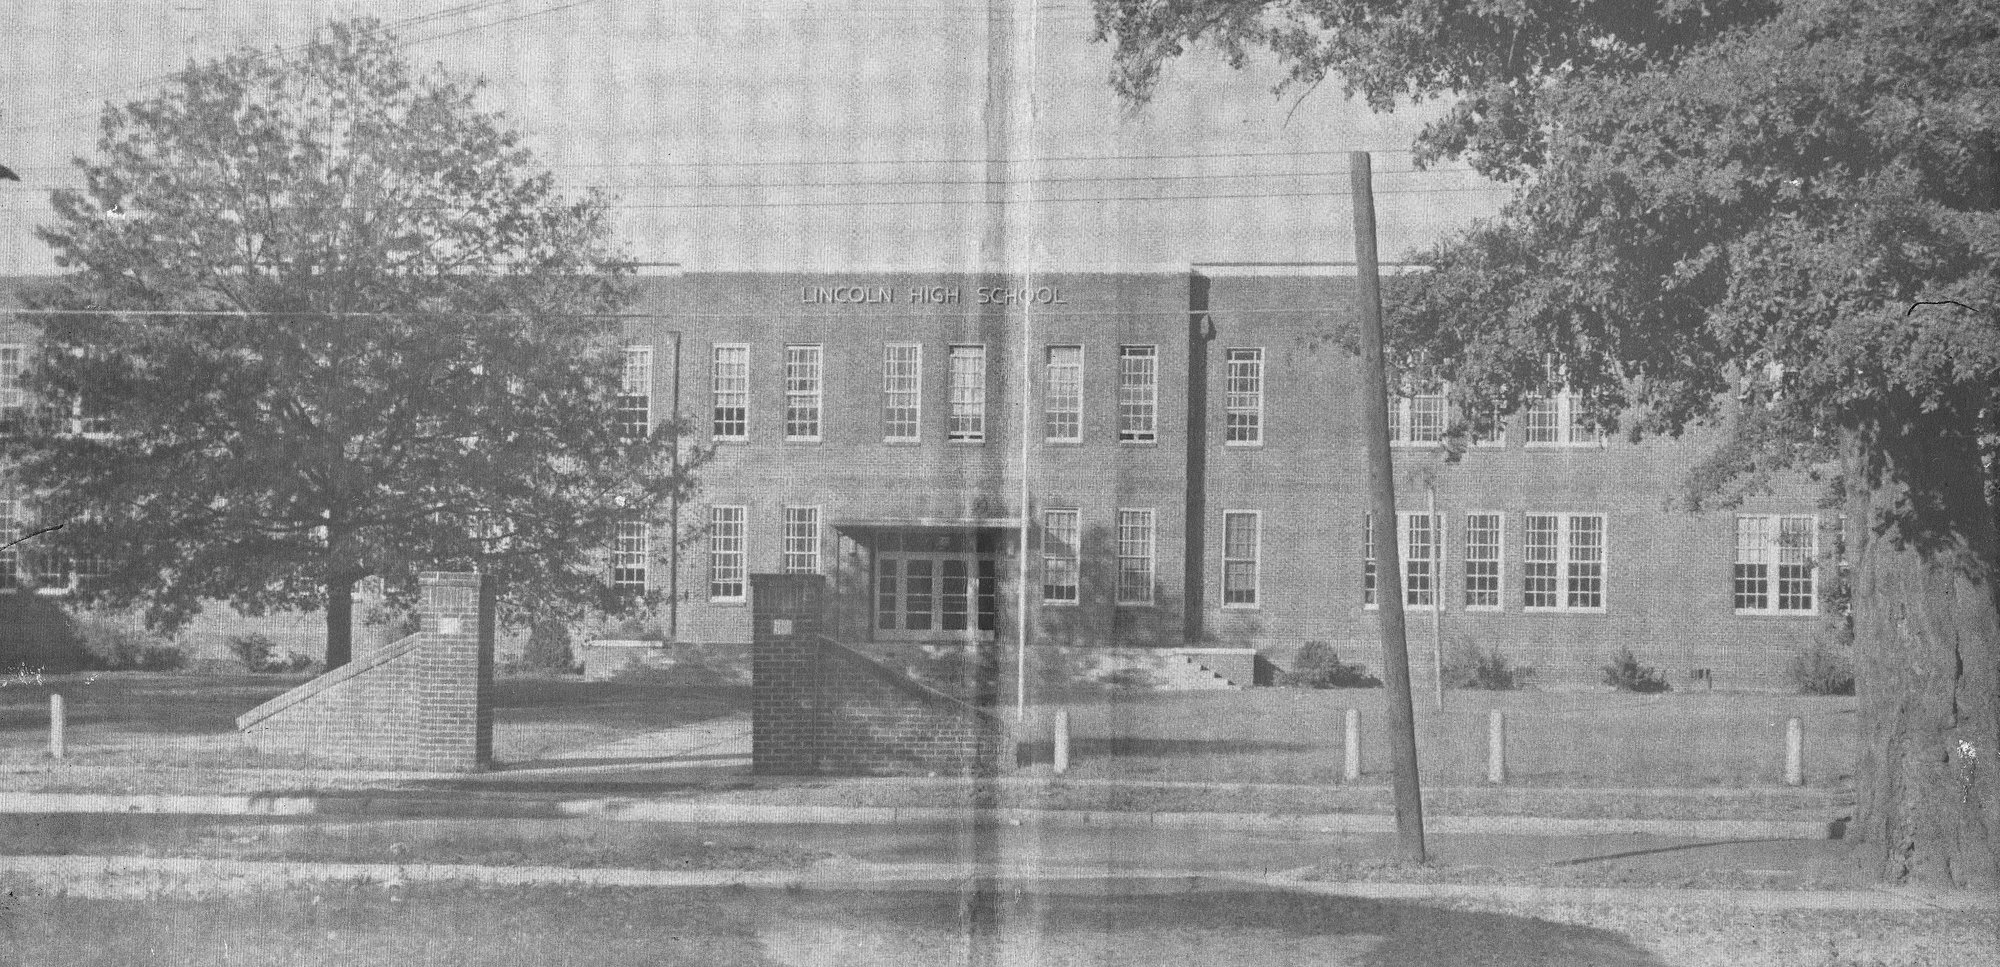 Lincoln High School was started in the 1870s in Sumter as a public school.